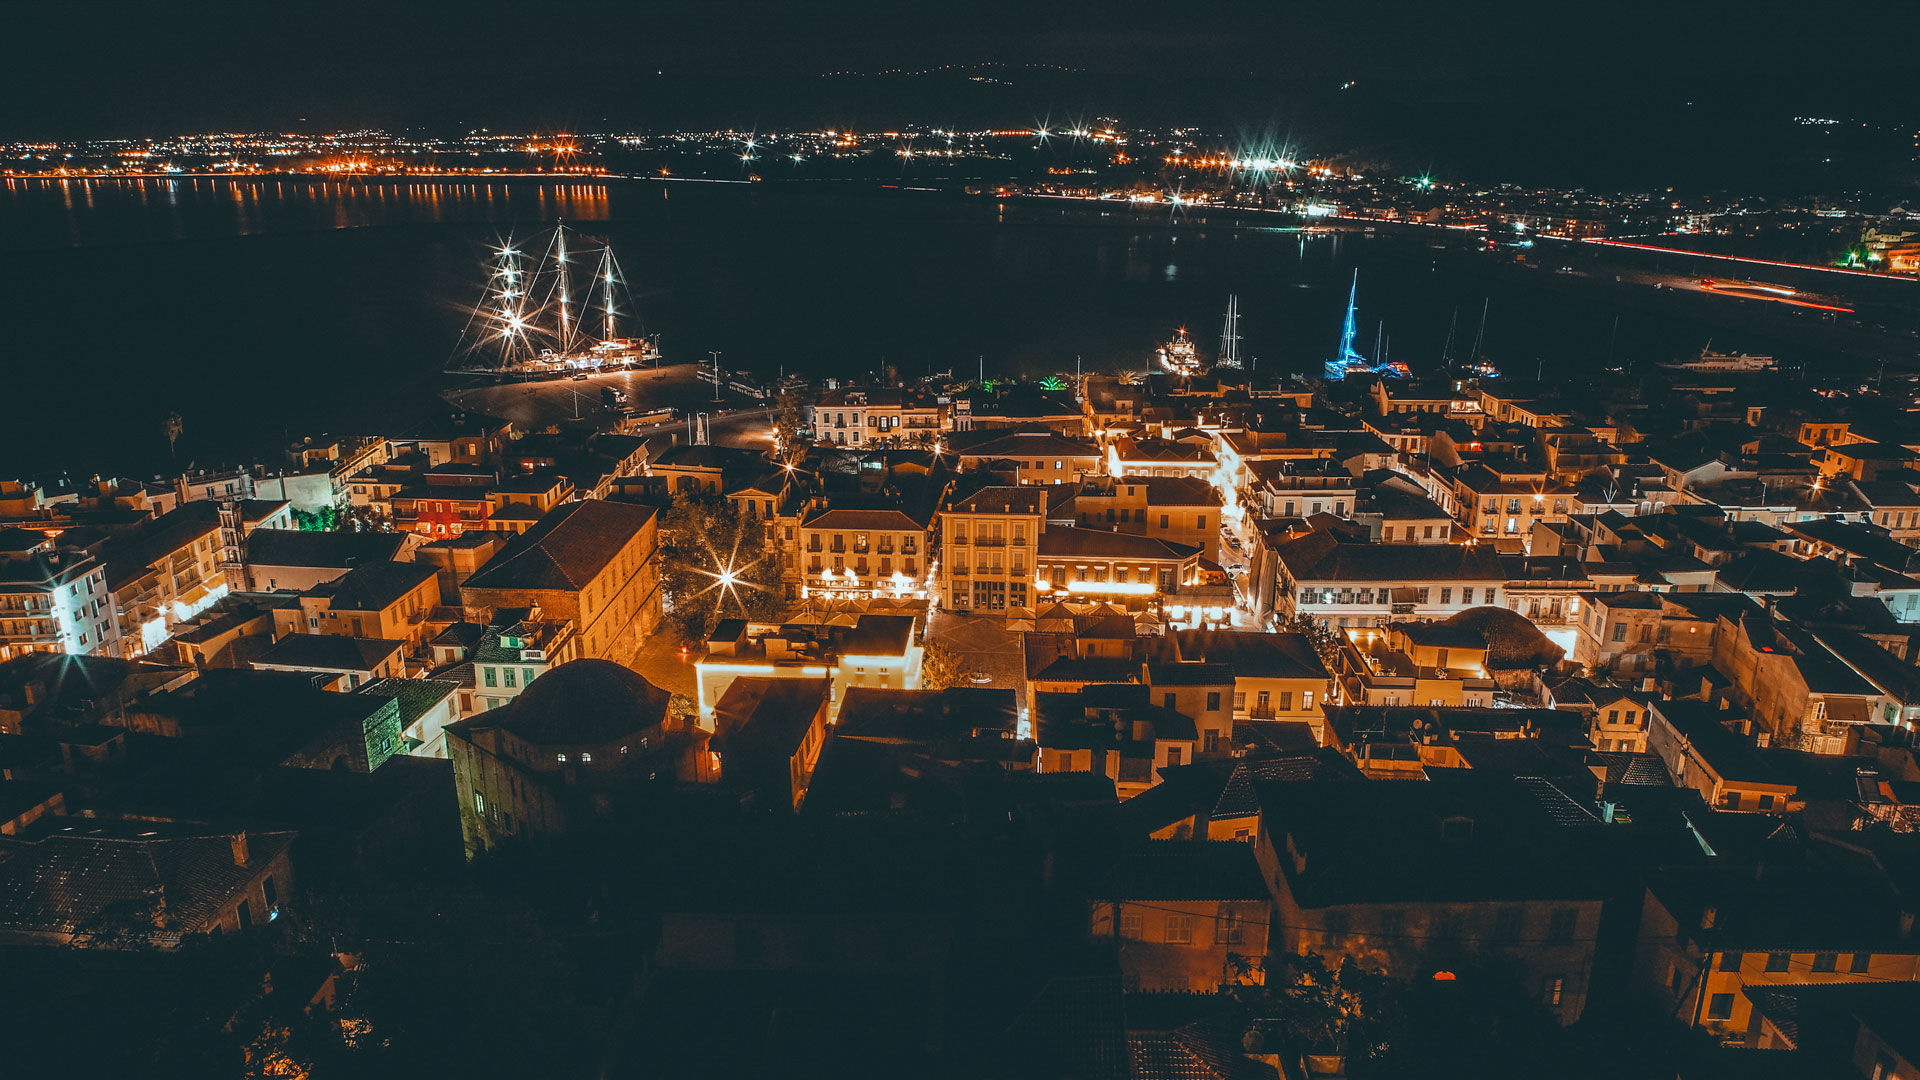 Nafplio's Old Town & waterfront by night